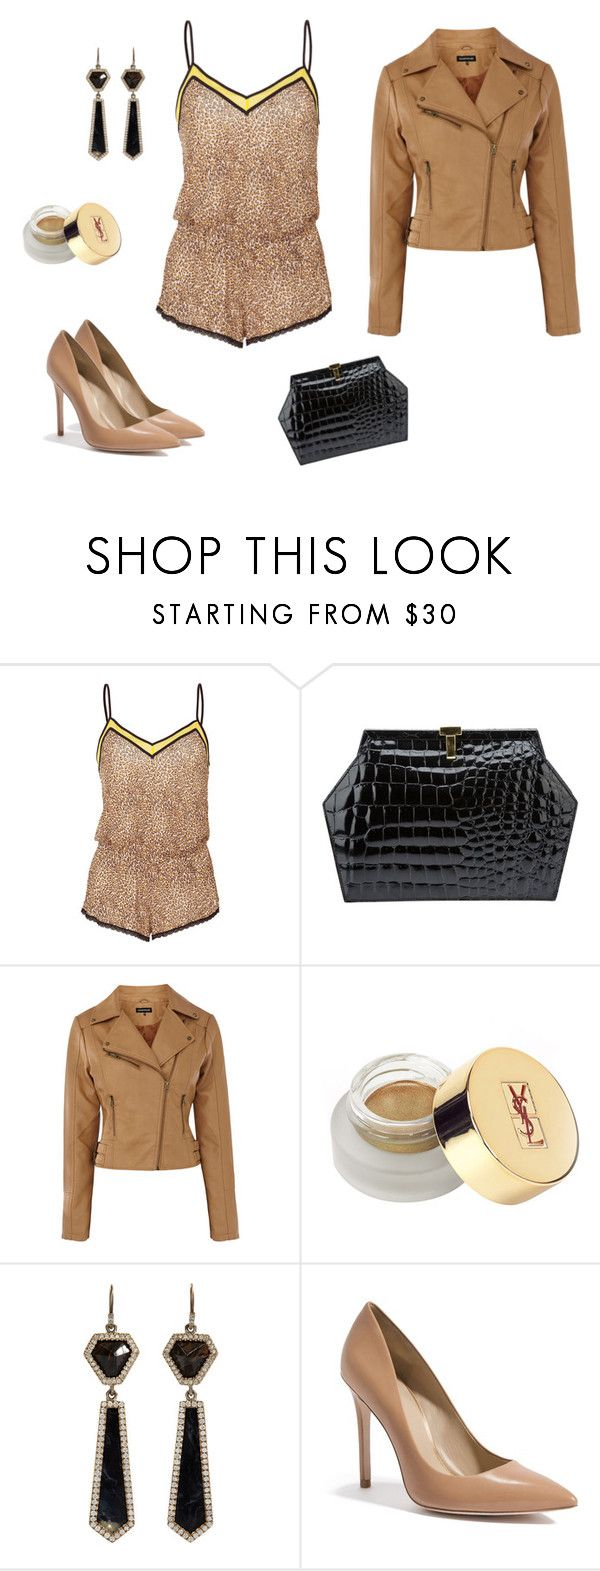 """""""15"""" by kitty-the-cat ❤ liked on Polyvore featuring Juicy Couture, Tiffany & Co., Warehouse, Yves Saint Laurent, Monique Péan, GUESS by Marciano, women's clothing, women, female and woman"""